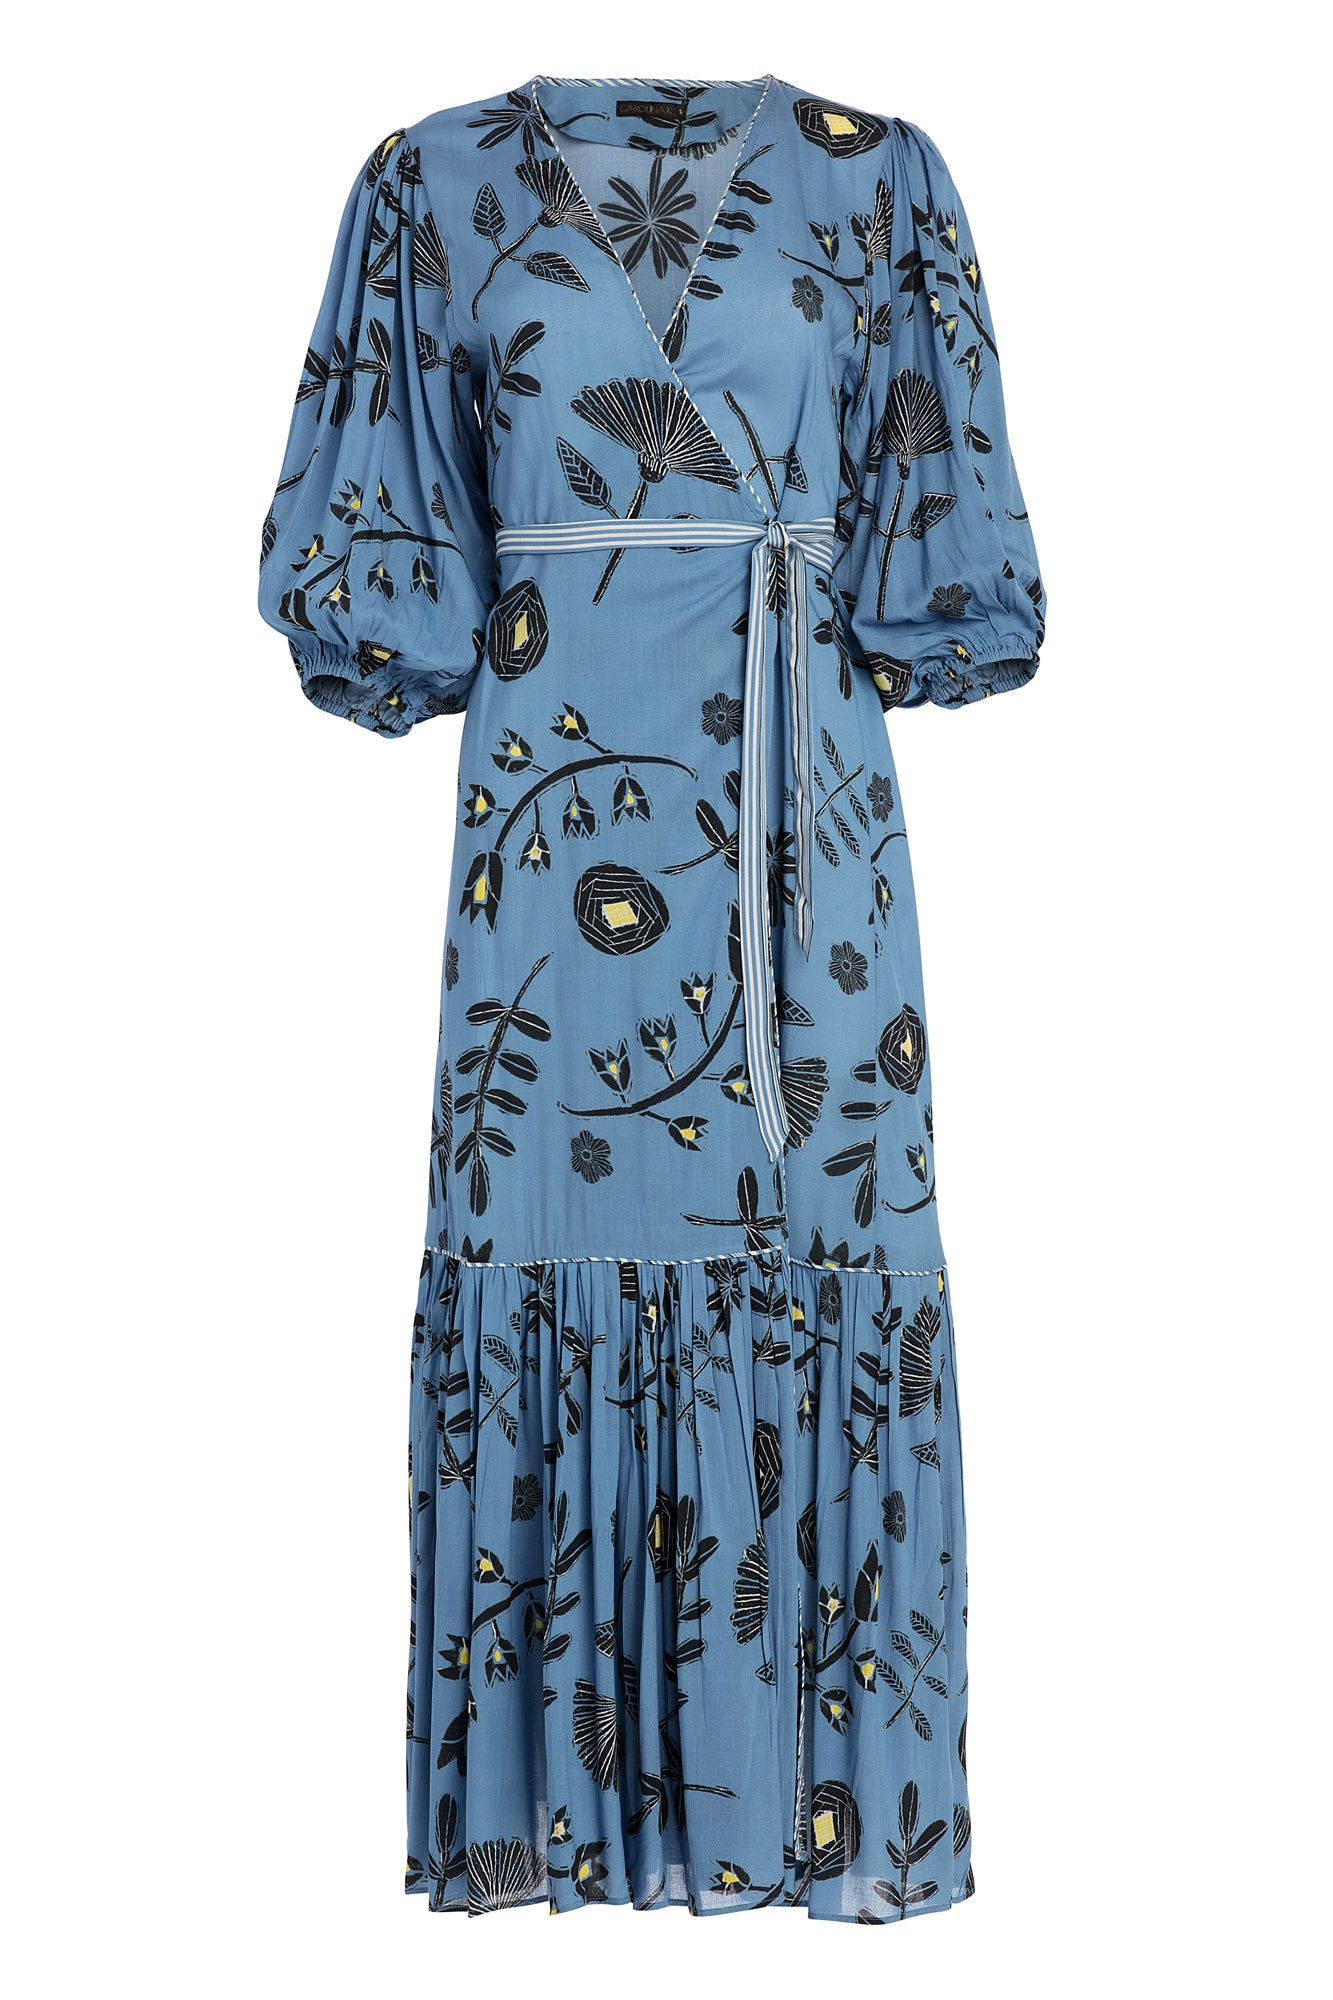 Carolina K Debra Robe in Blue Tea Flowers